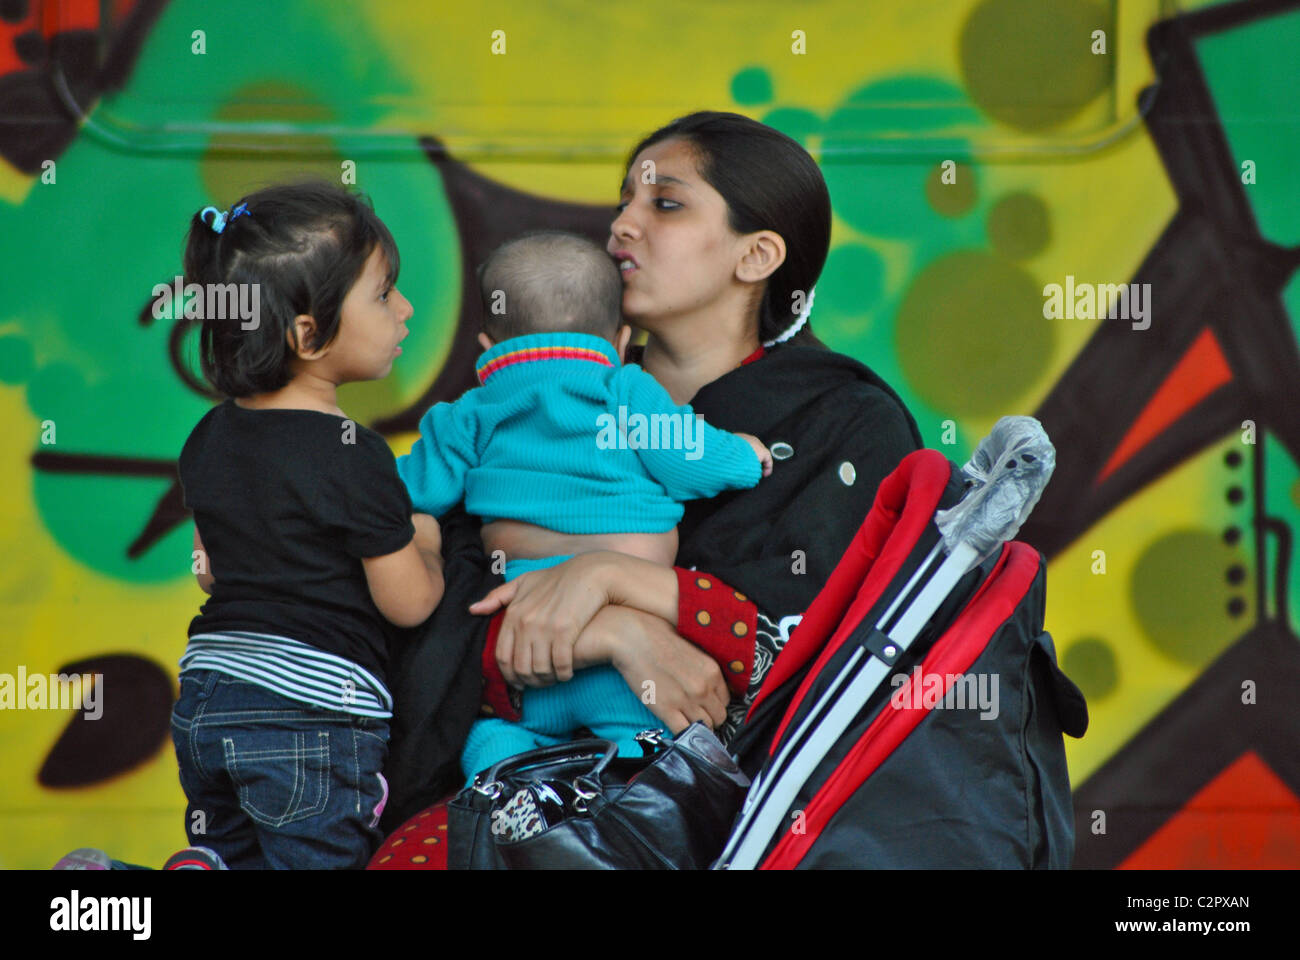 Single mother with two children against backdrop of graffiti, Venice, Italy - Stock Image